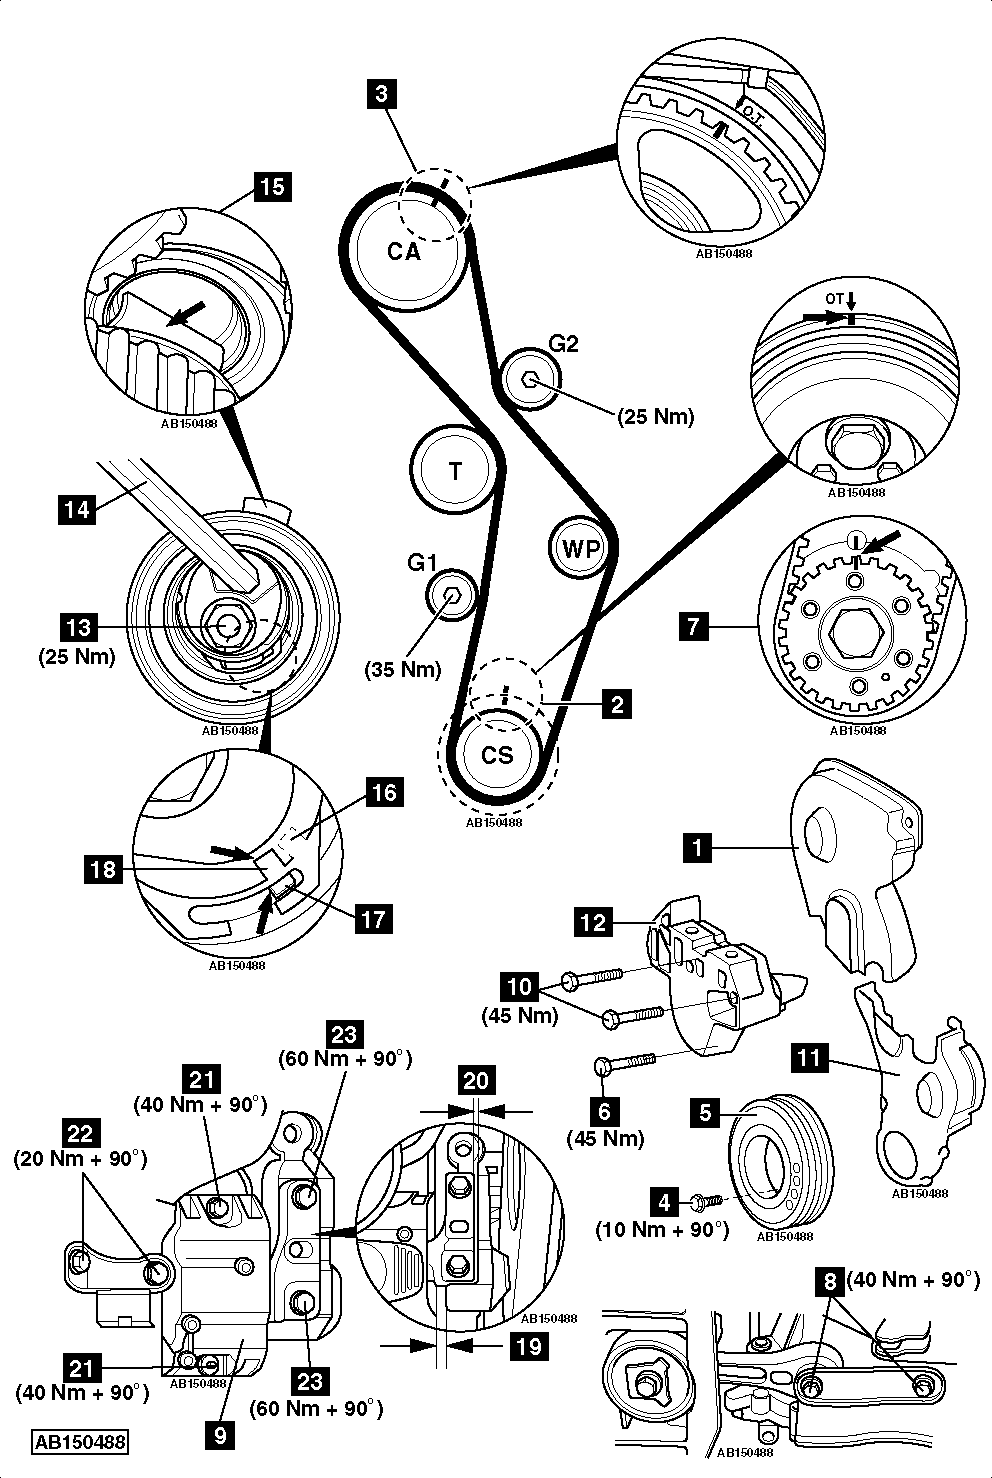 Vw Jetta Wiring Diagram Besides 2000 Vw Jetta 2 0 Engine On 2002 Vw